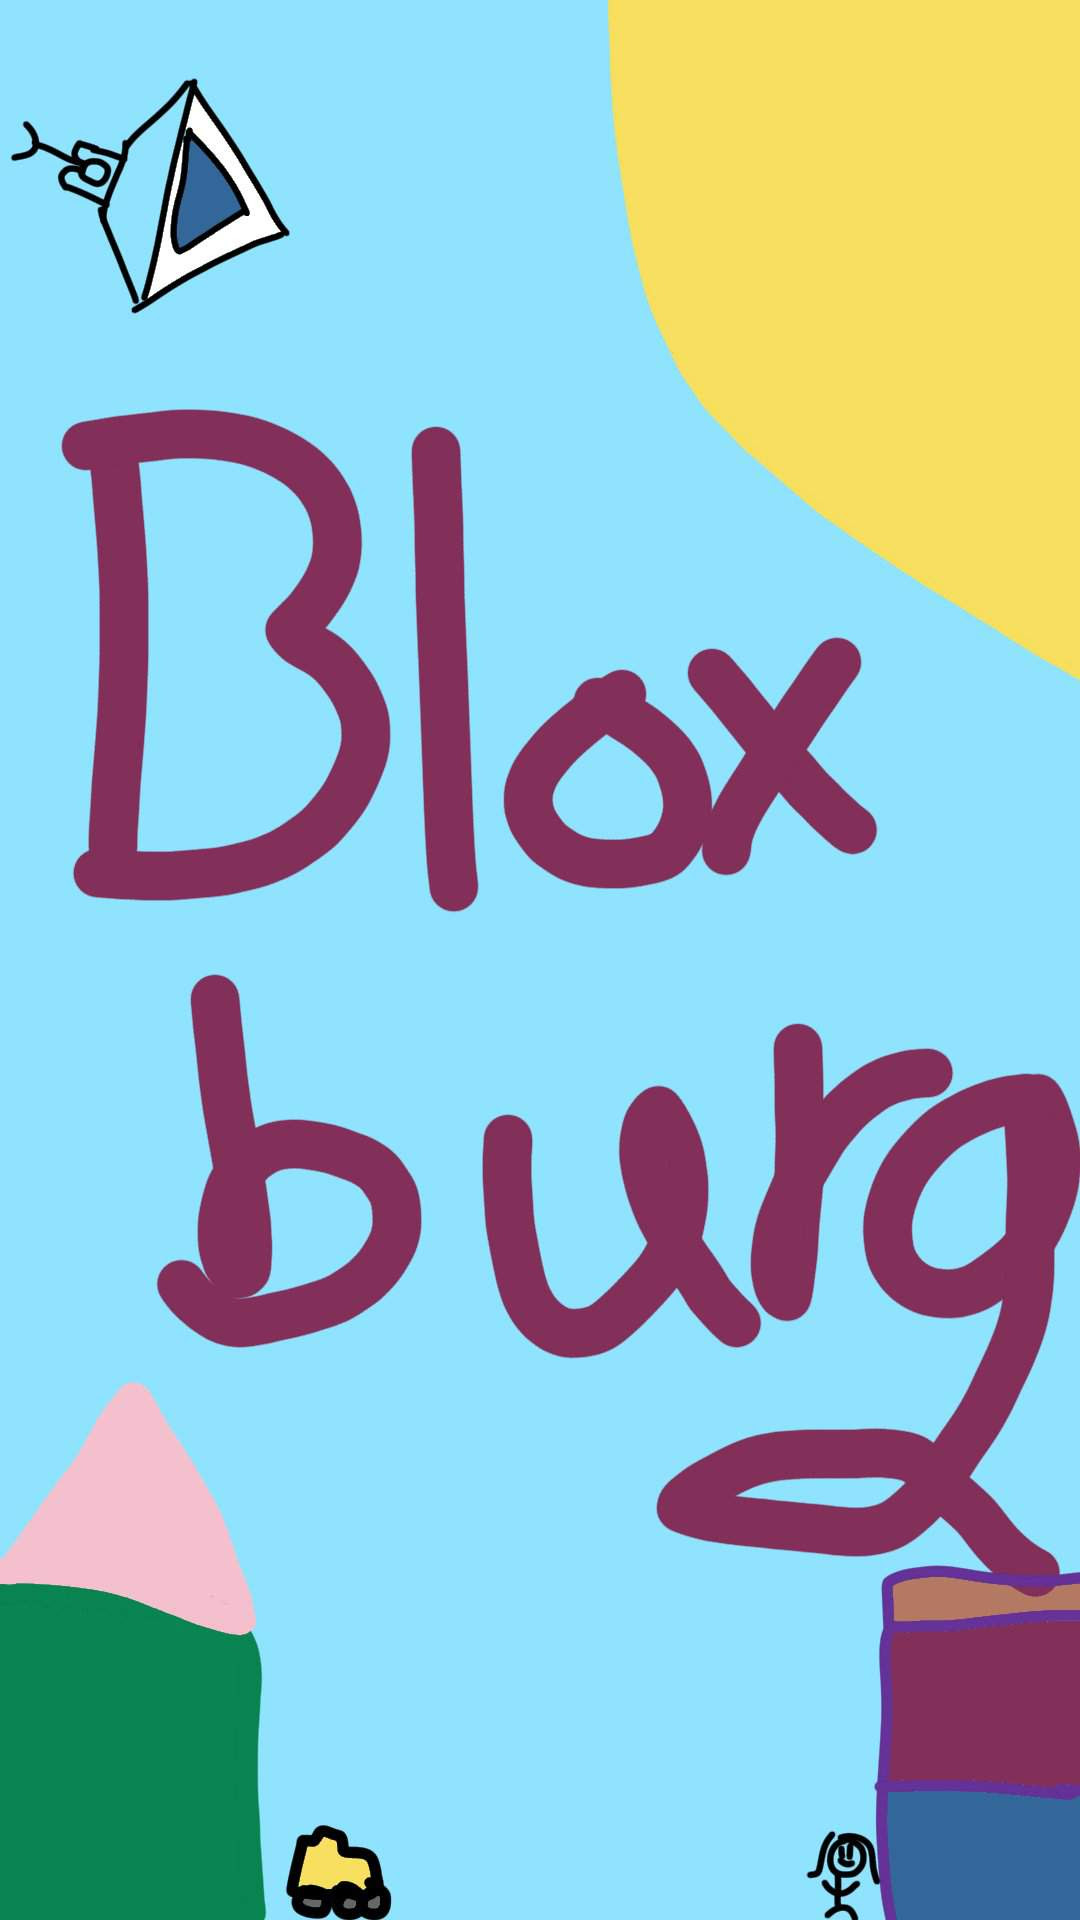 Bloxburg Game Review Roblox Amino - what does abc for a kid mean in roblox